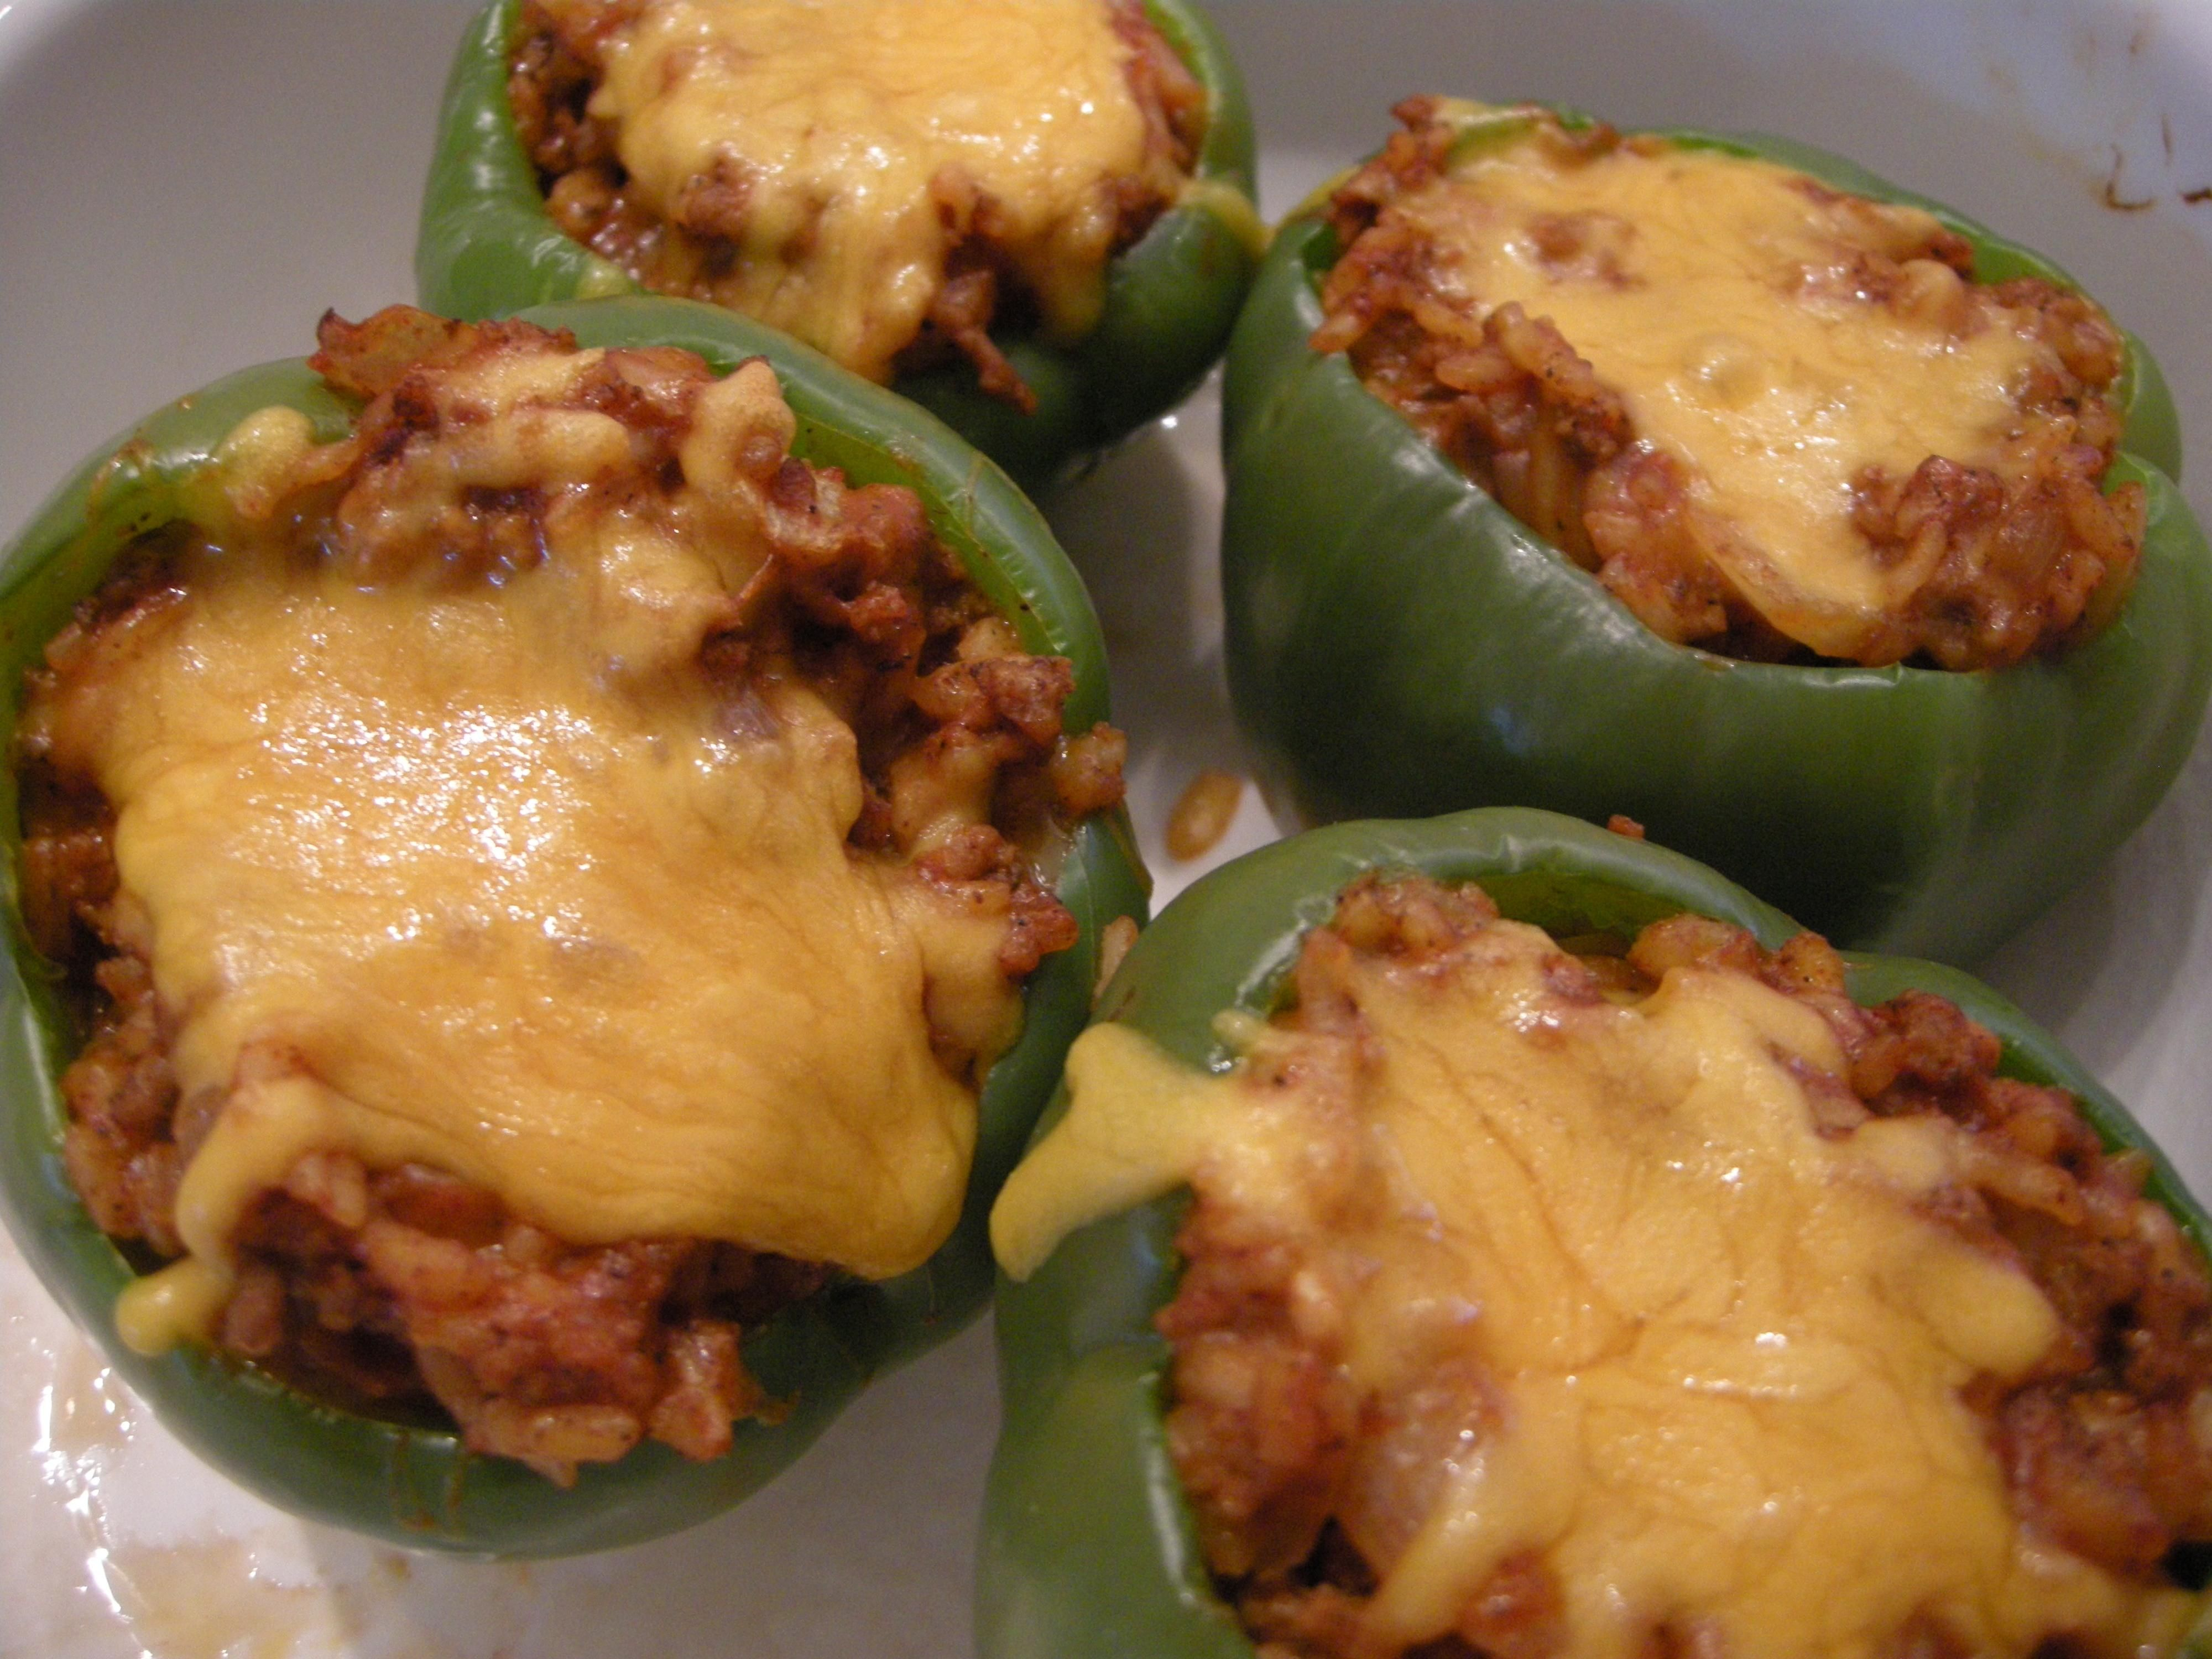 Stuffed Peppers With Hamburger Meat Stuffed Peppers Recipes Food